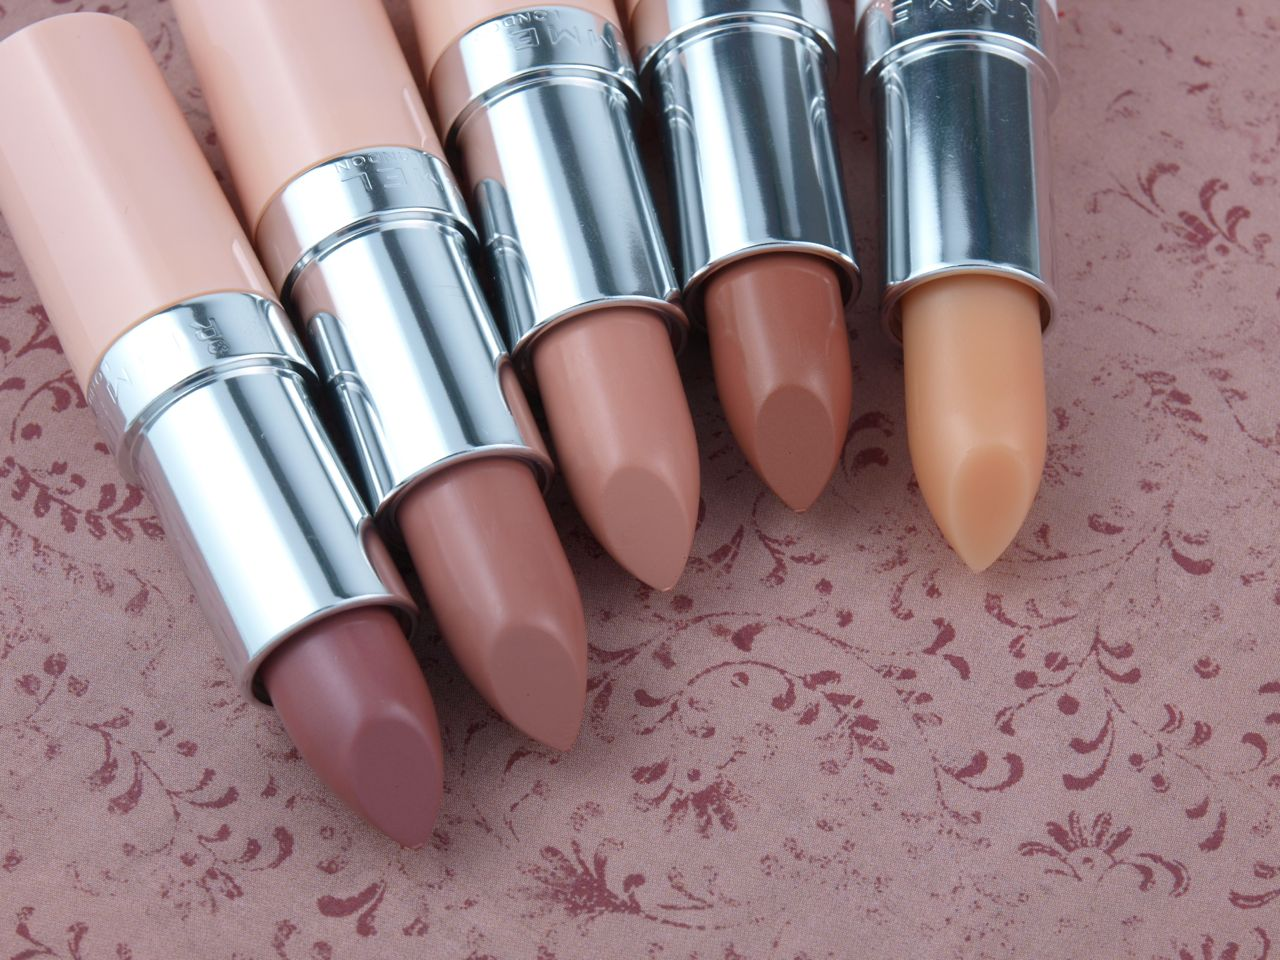 Rimmel London Kate Moss Nude Collection Lipsticks: Review and Swatches